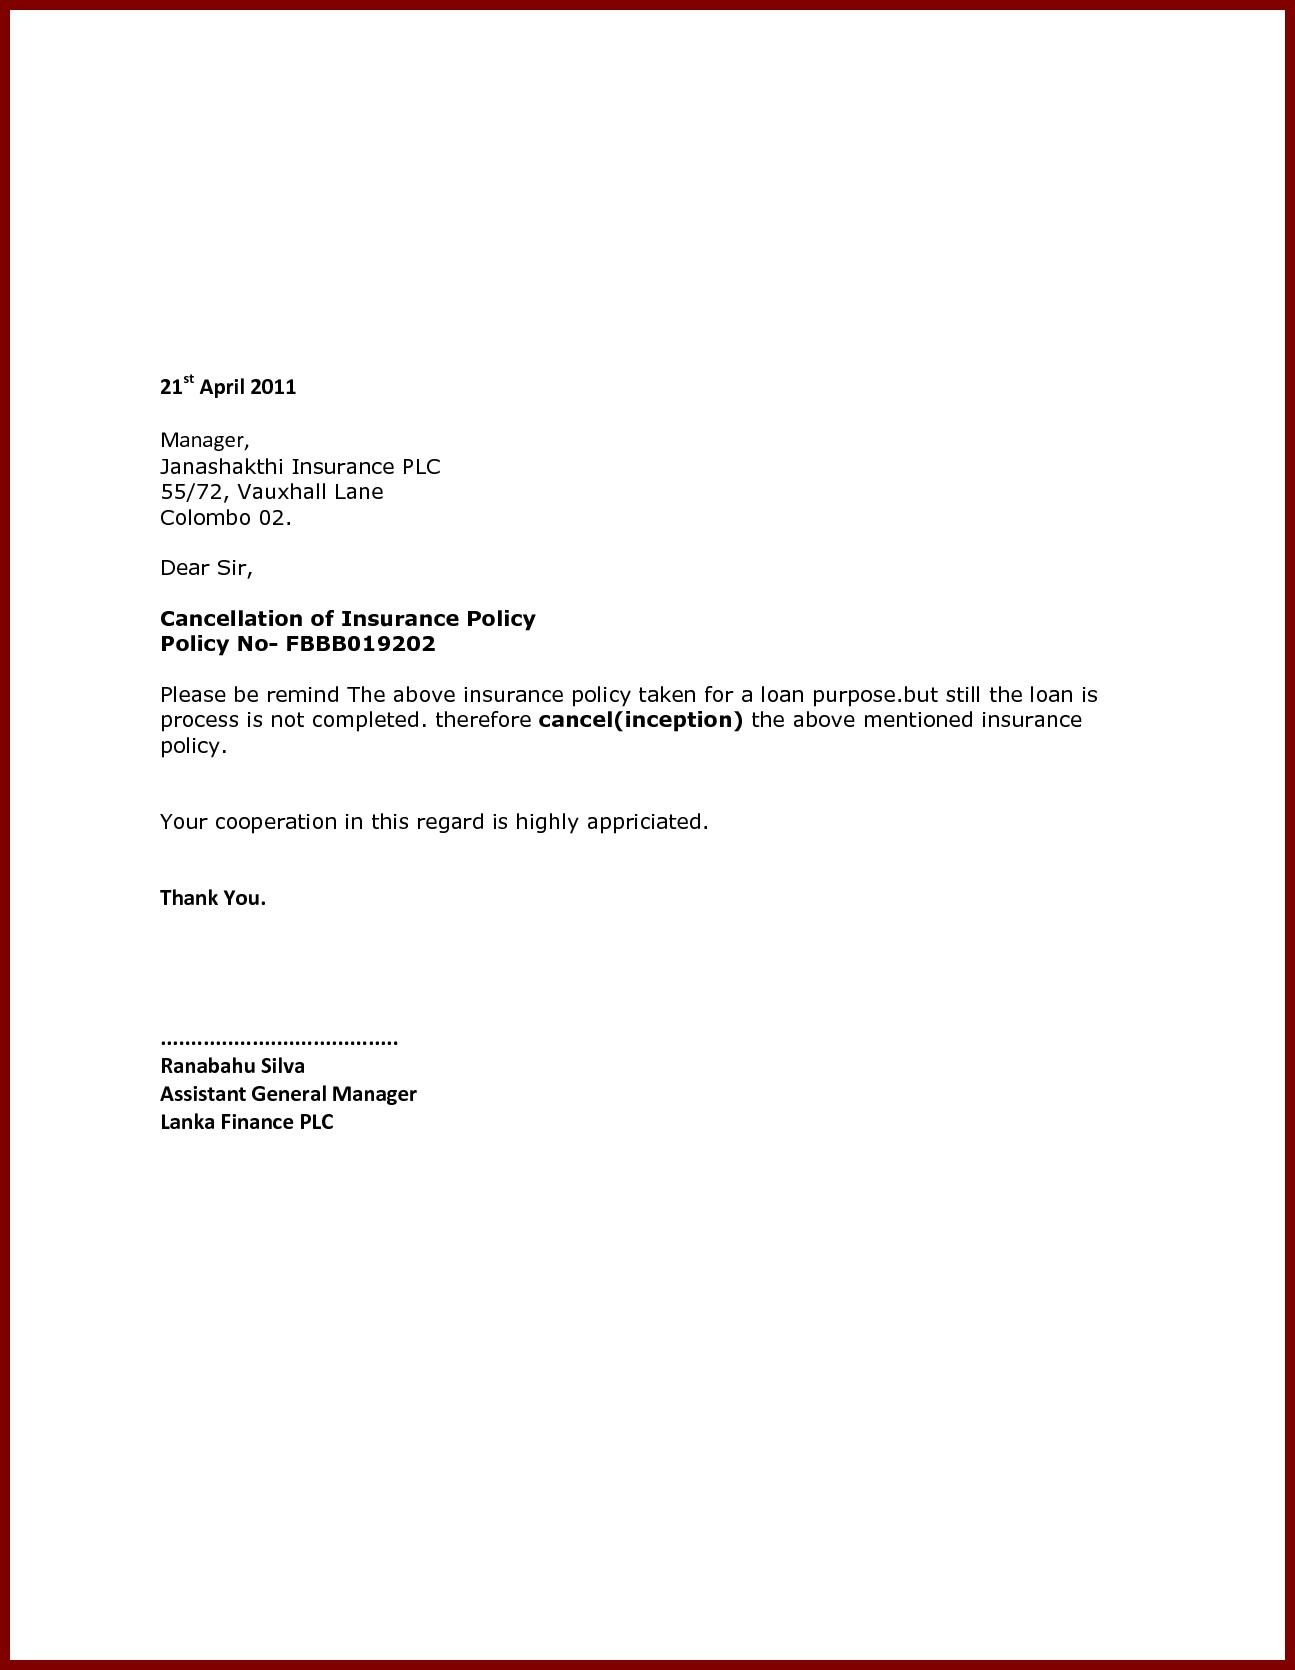 Car Insurance Cancellation Letter Template - Example Cancellation Letter Save Cancel Service Letter for